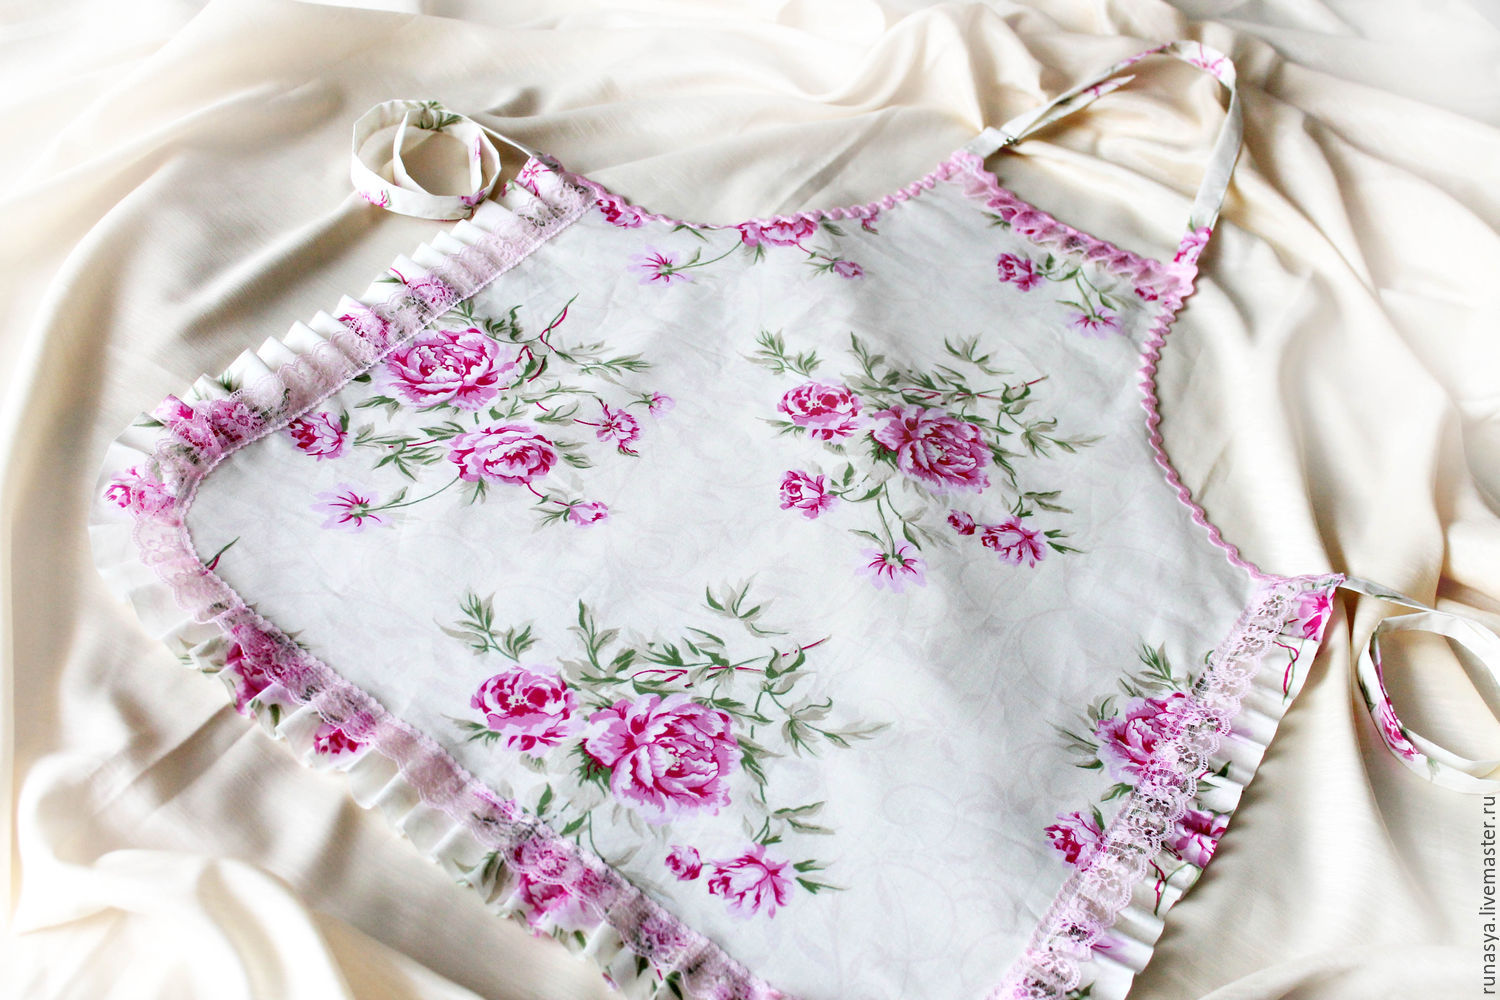 Apron waterproof 'Soft shabby' apron for kitchen, Aprons, Rybinsk,  Фото №1